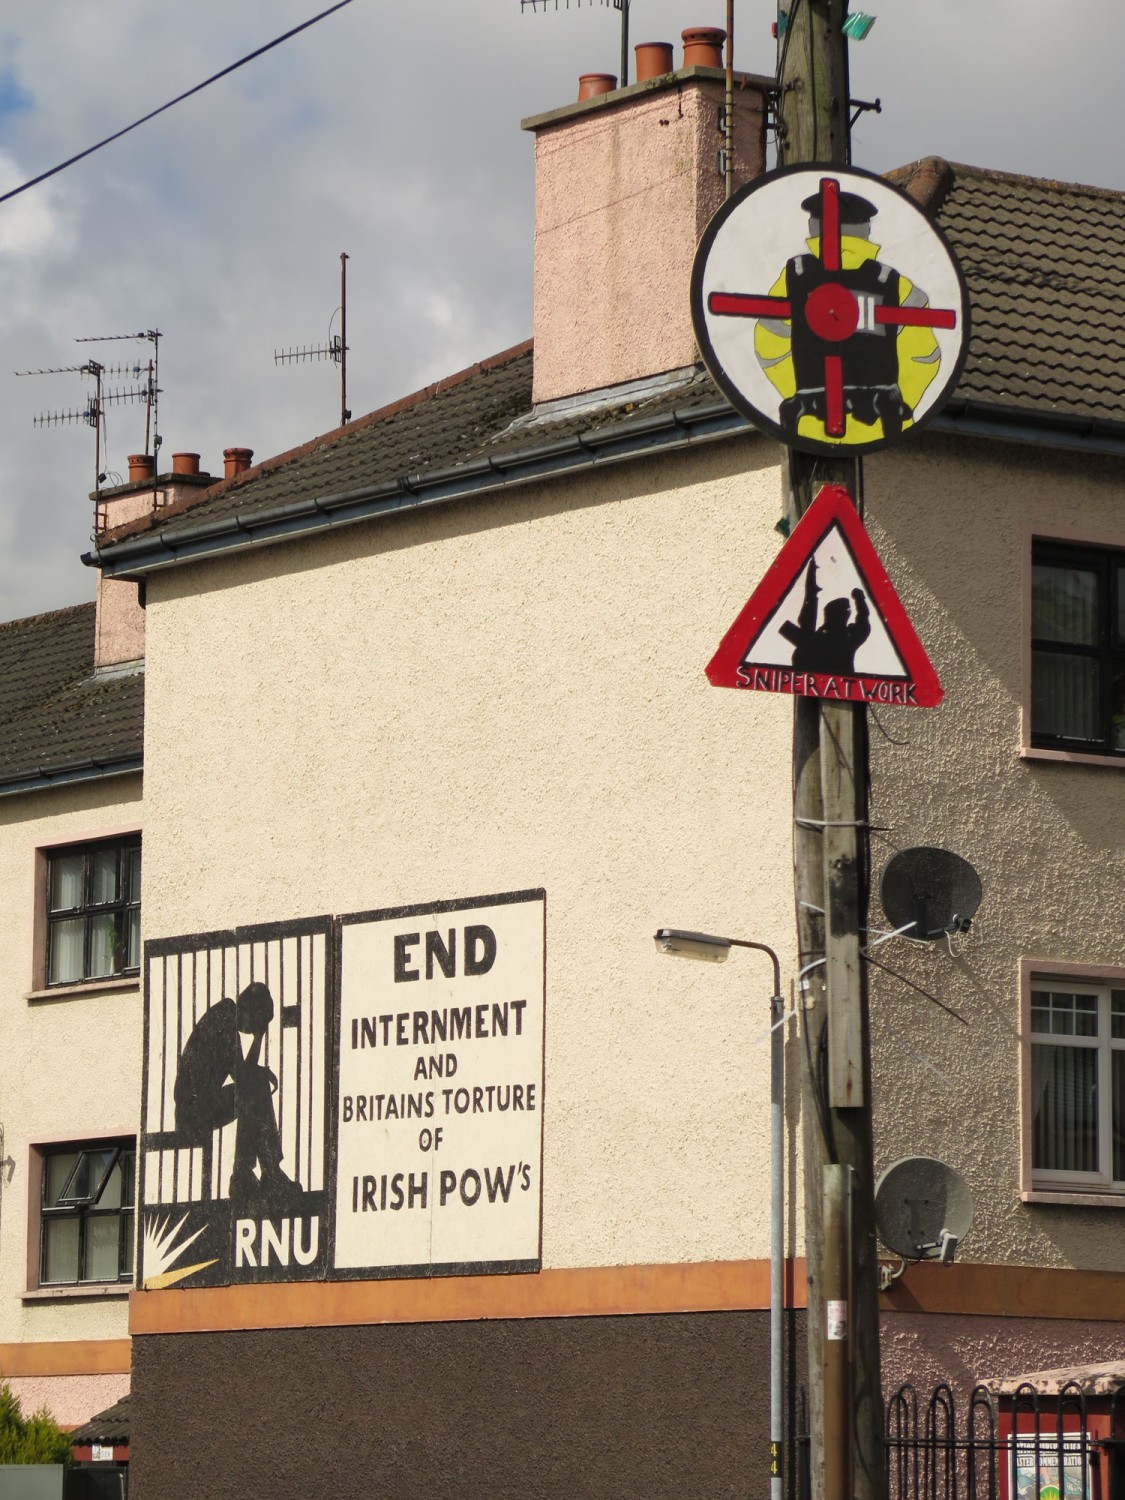 Northern-Ireland-Derry-Londonderry-Bogside-Sniper-Warning